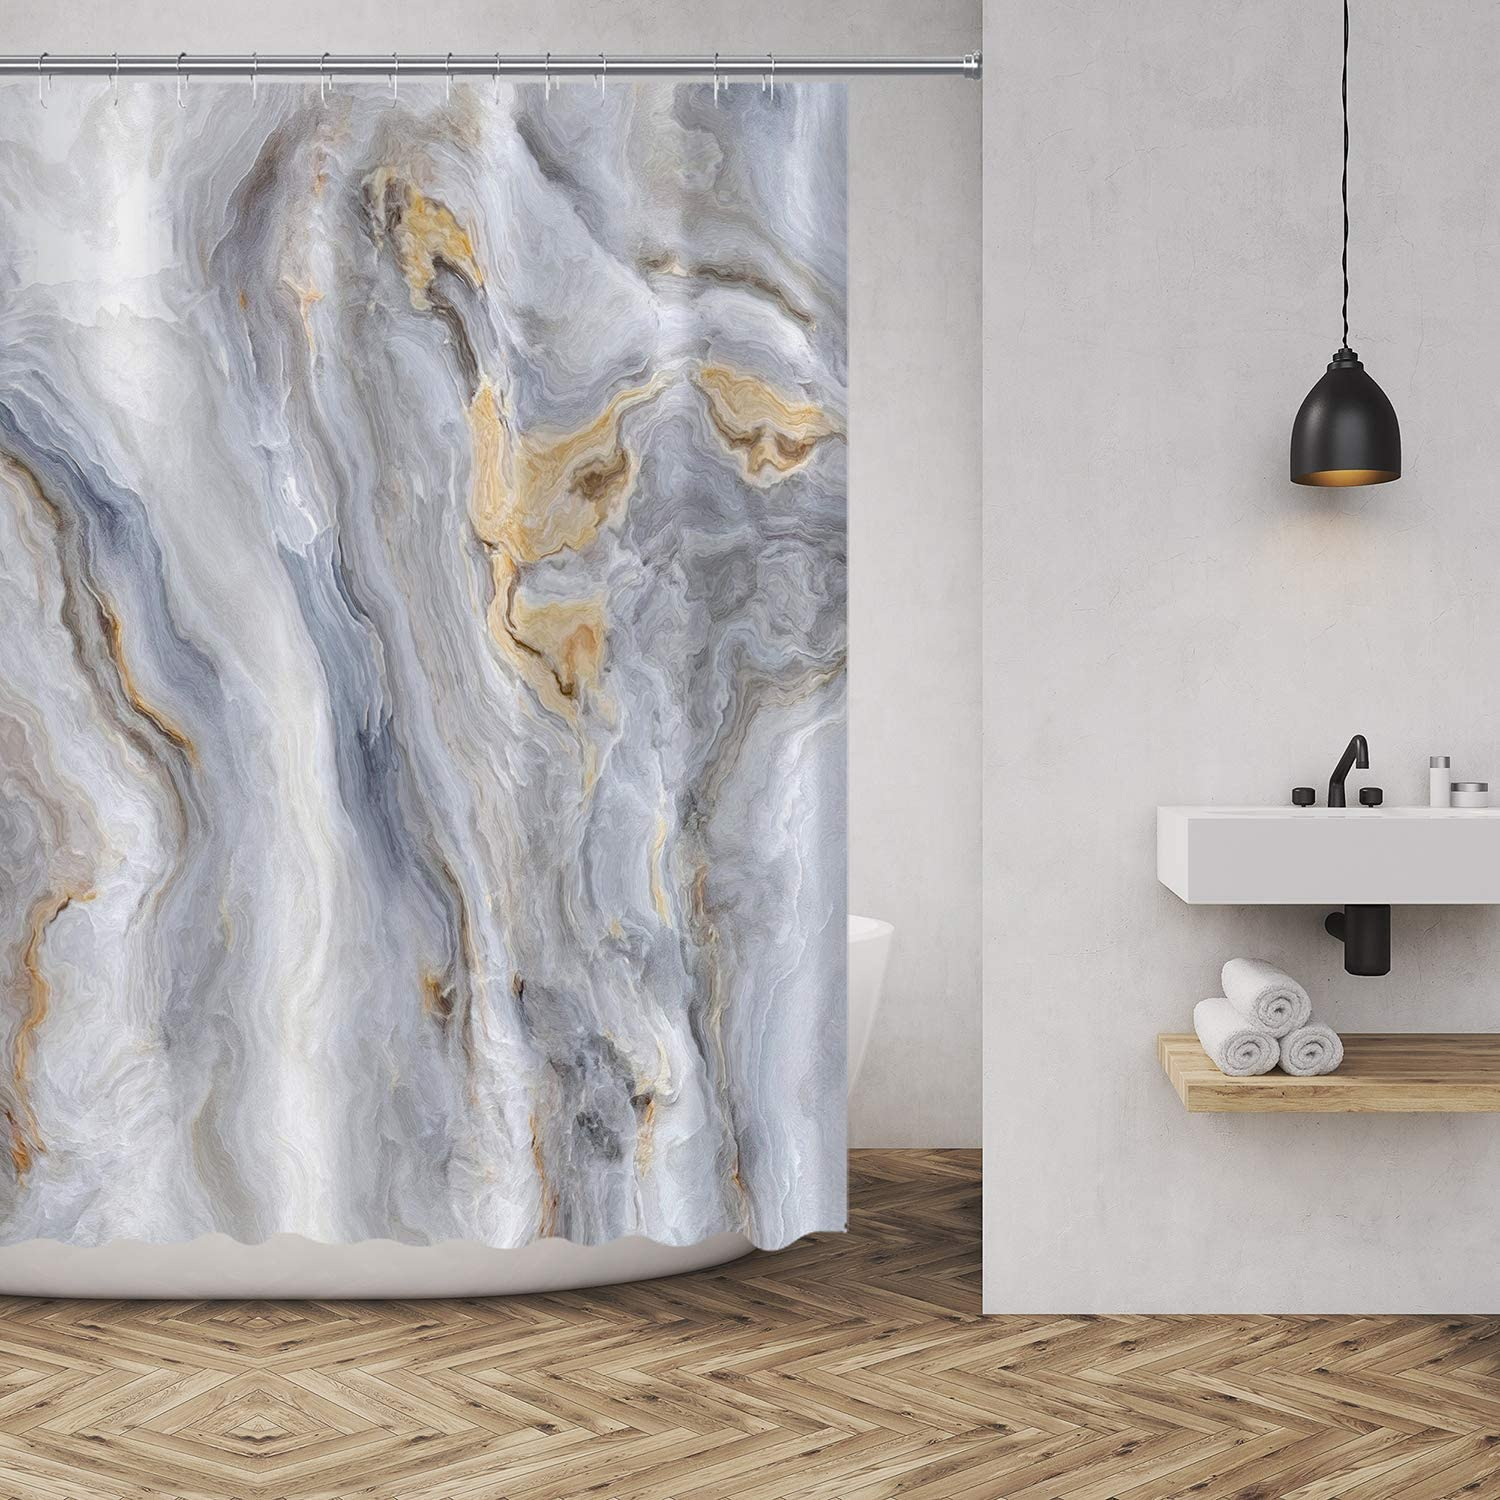 MuaToo Marble Shower Curtain Modern Abstract Art Decor Style Polyester Fabric Bathroom Decor Sets with Hooks 72 x72 Inches, Blue Gold Grey White